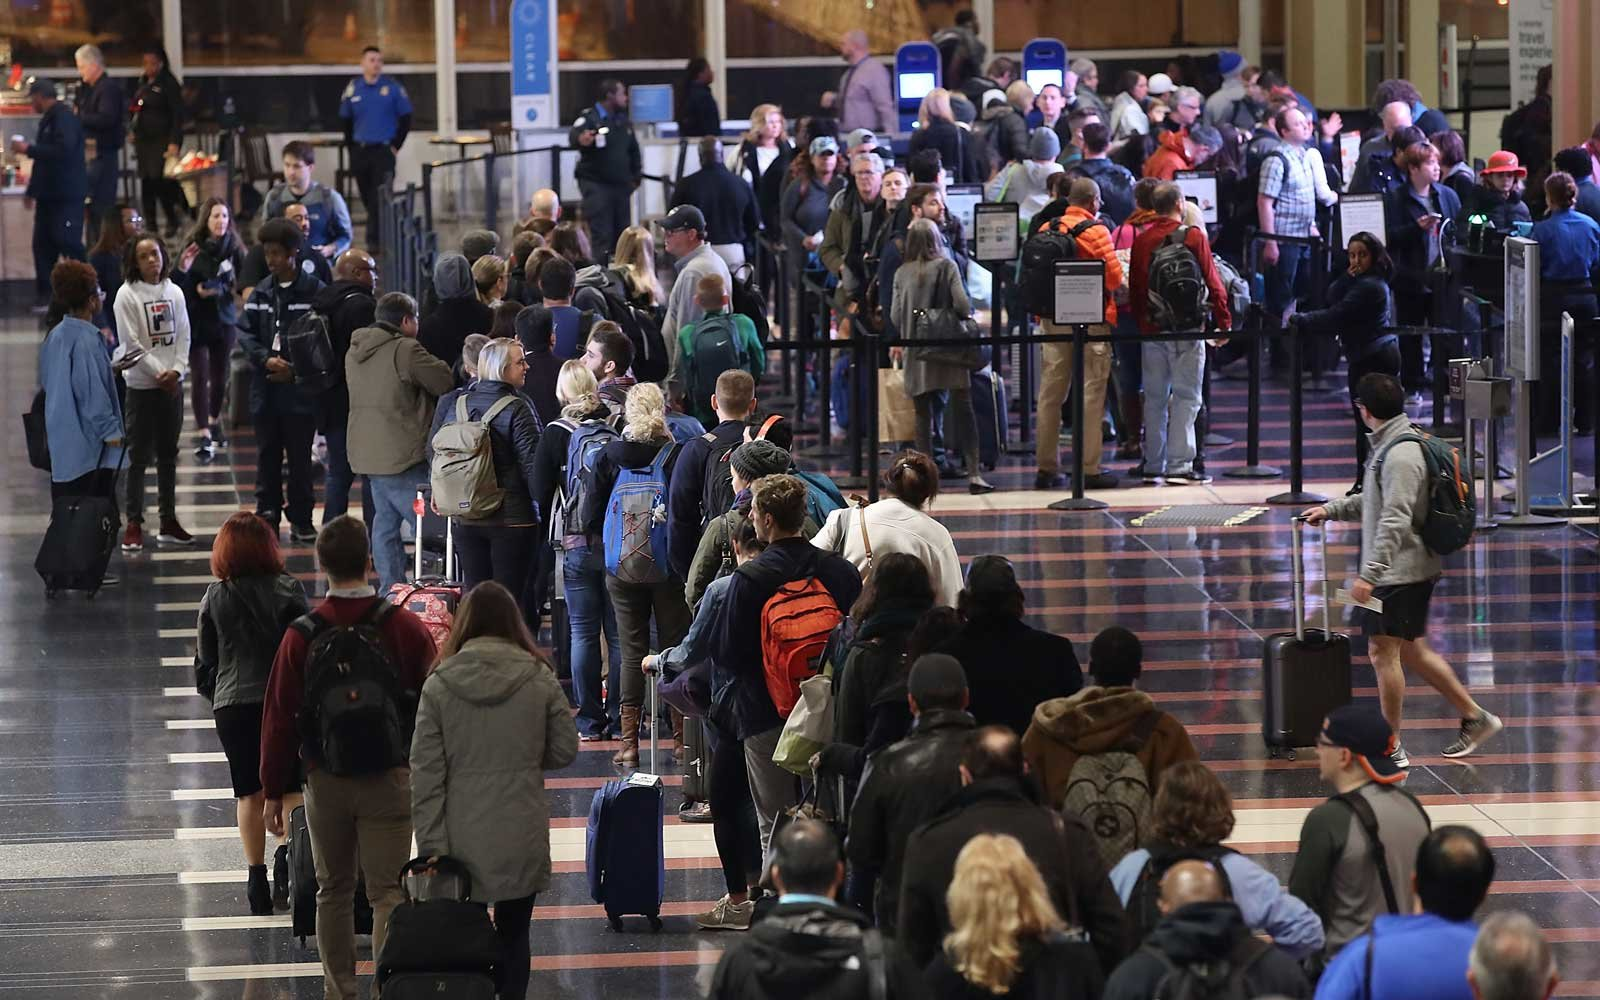 Avoid crowded security lines with these tips.